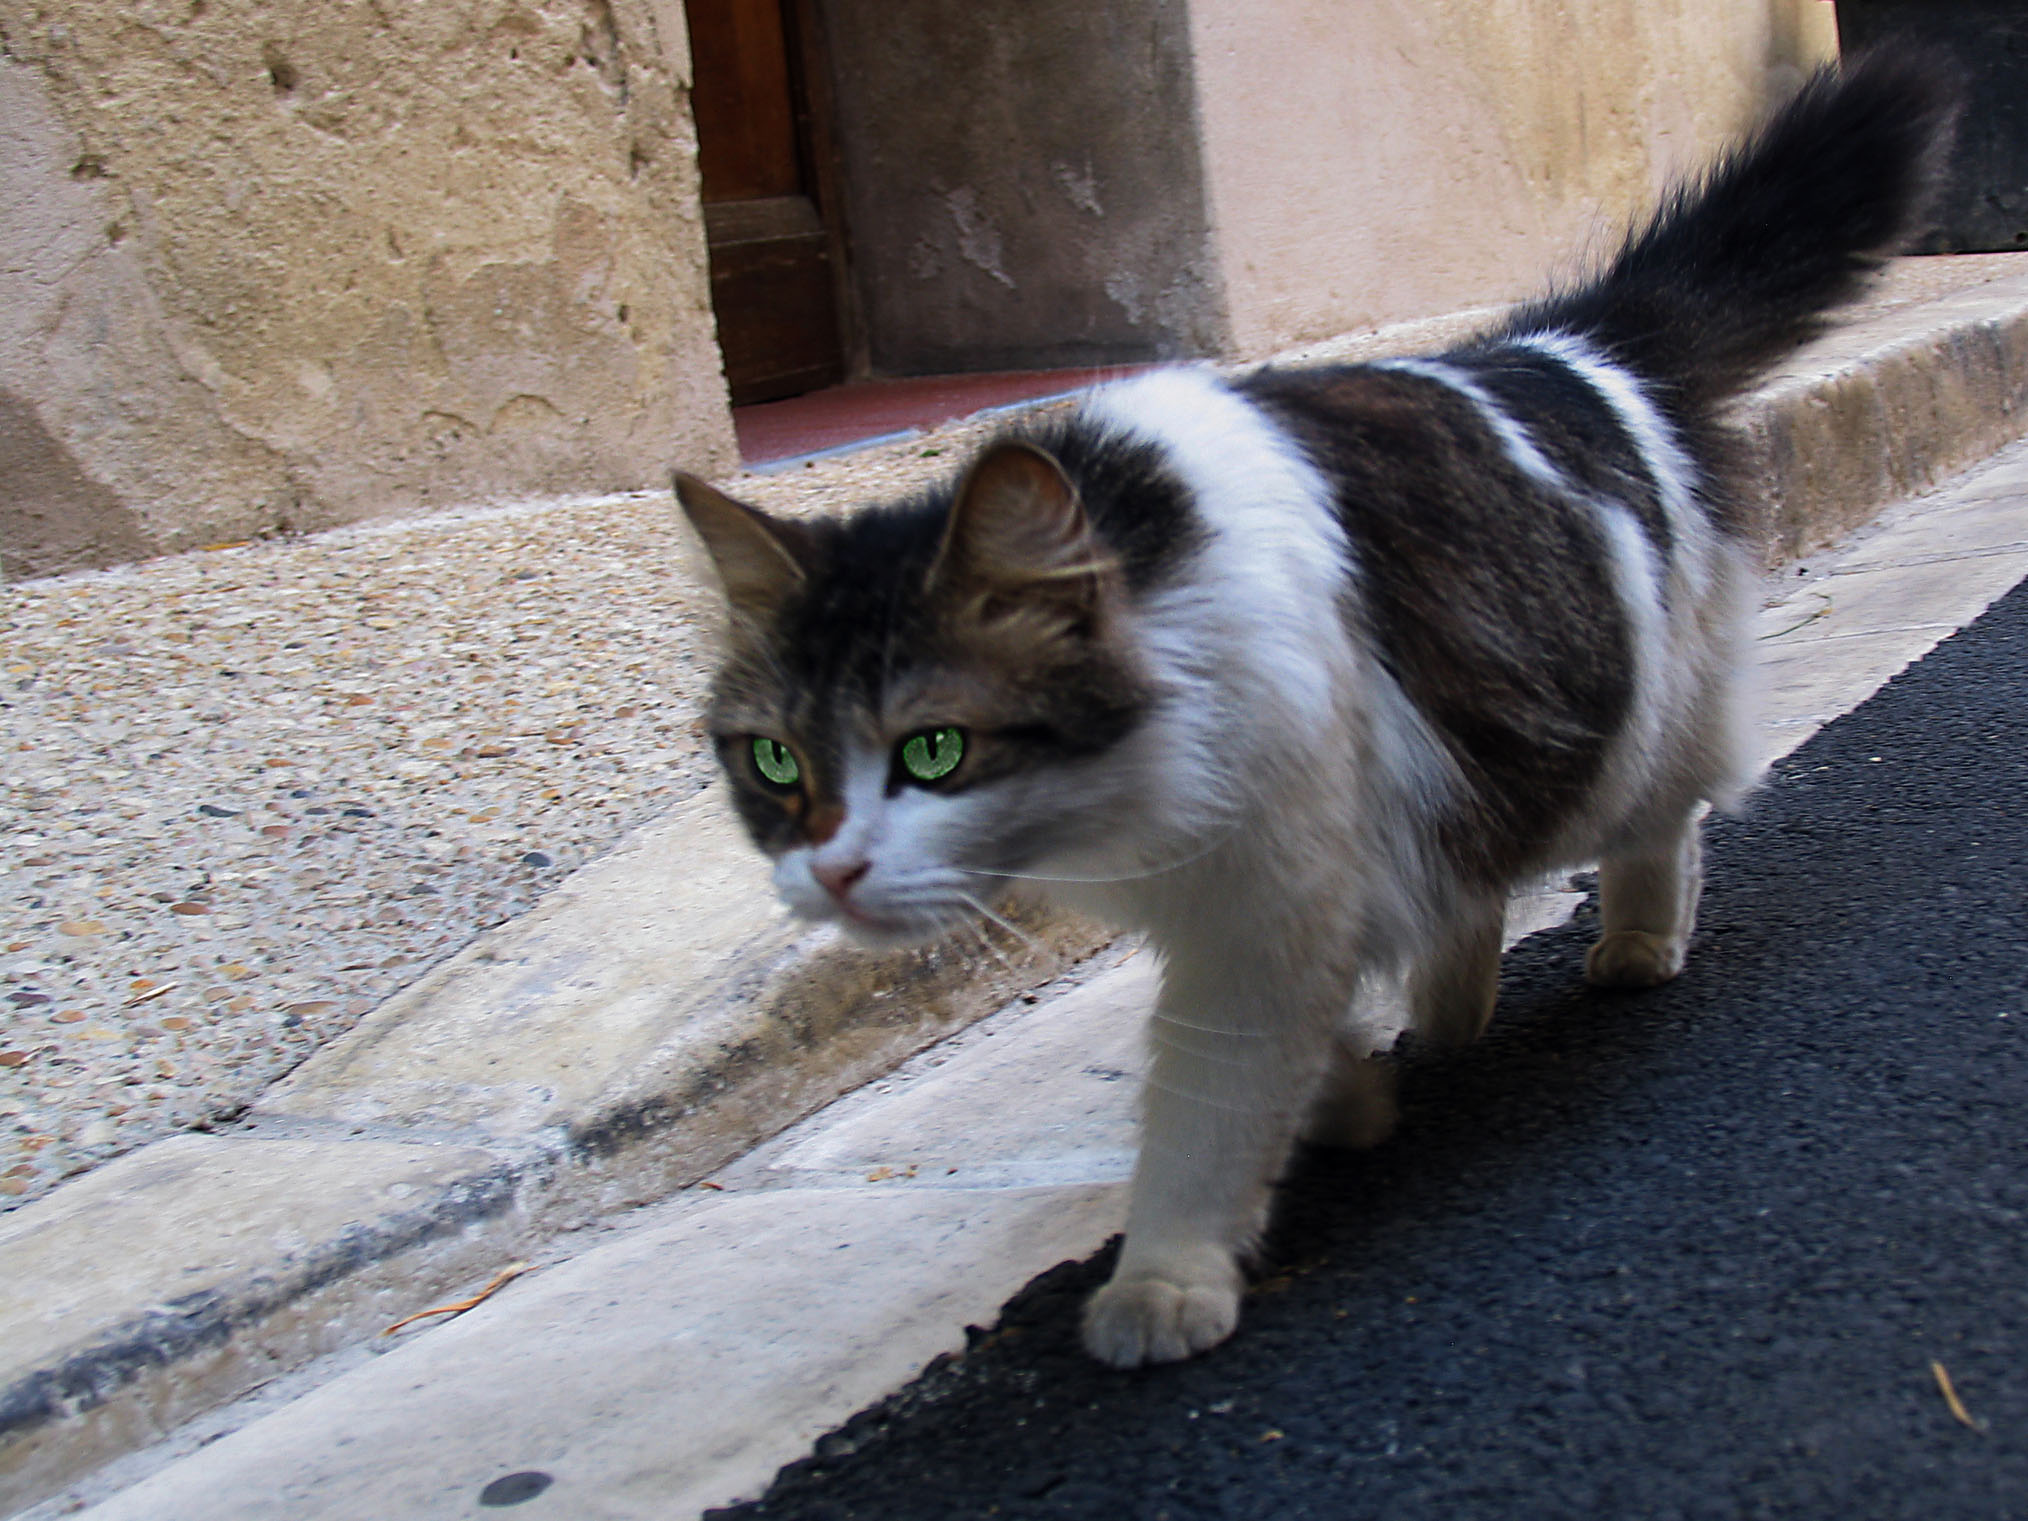 Melinda Isachsen JANIS Photography & Fine Art prowling cat St Remy de Provence France